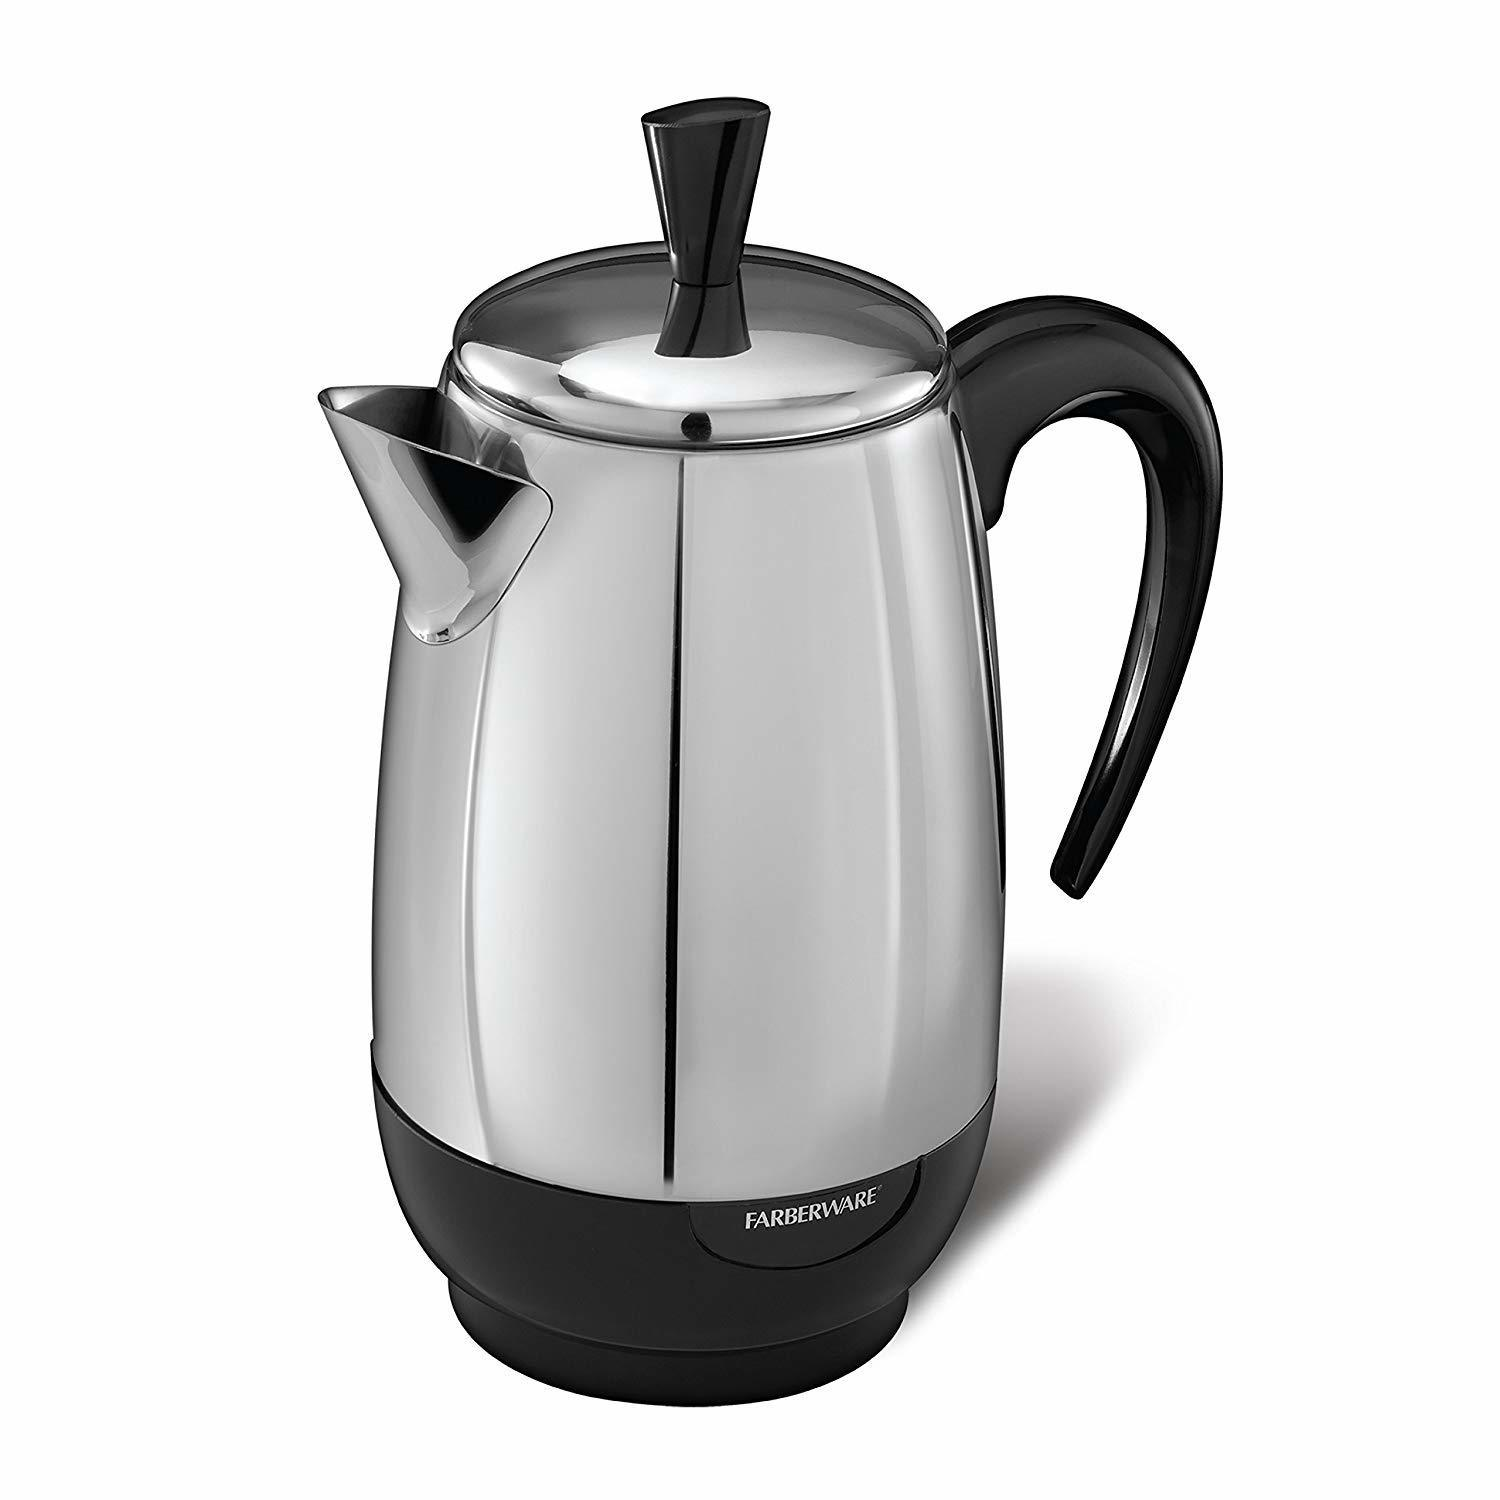 Farberware 8-Cup Percolator, Stainless Steel, FCP280